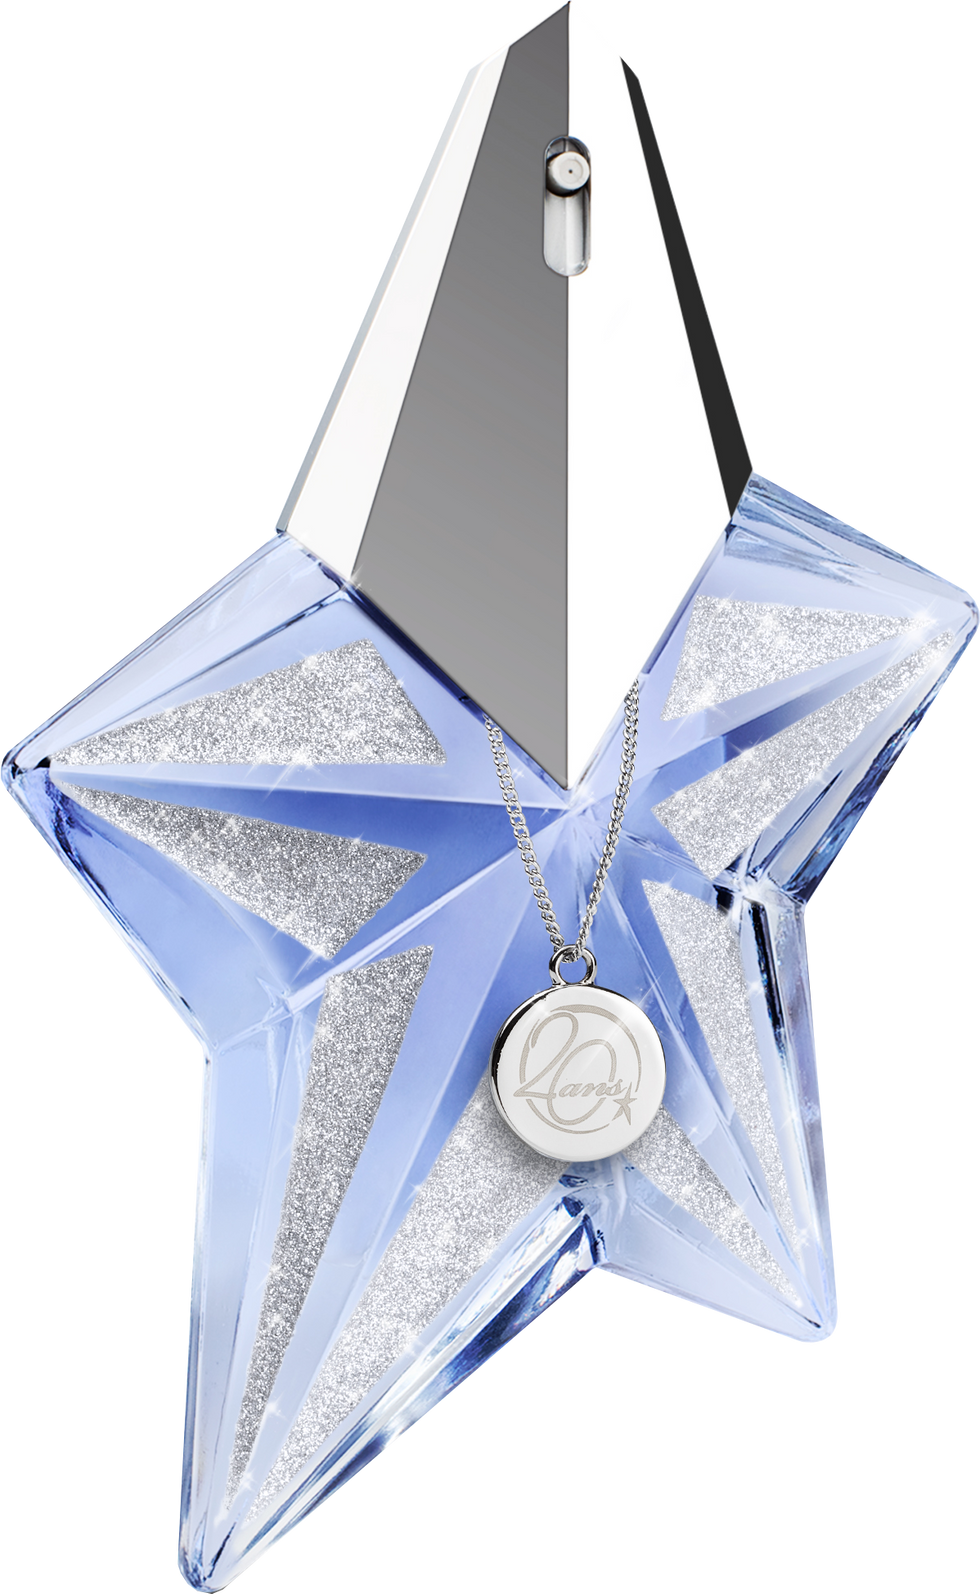 Win a Bottle of Thierry Mugler's ANGEL